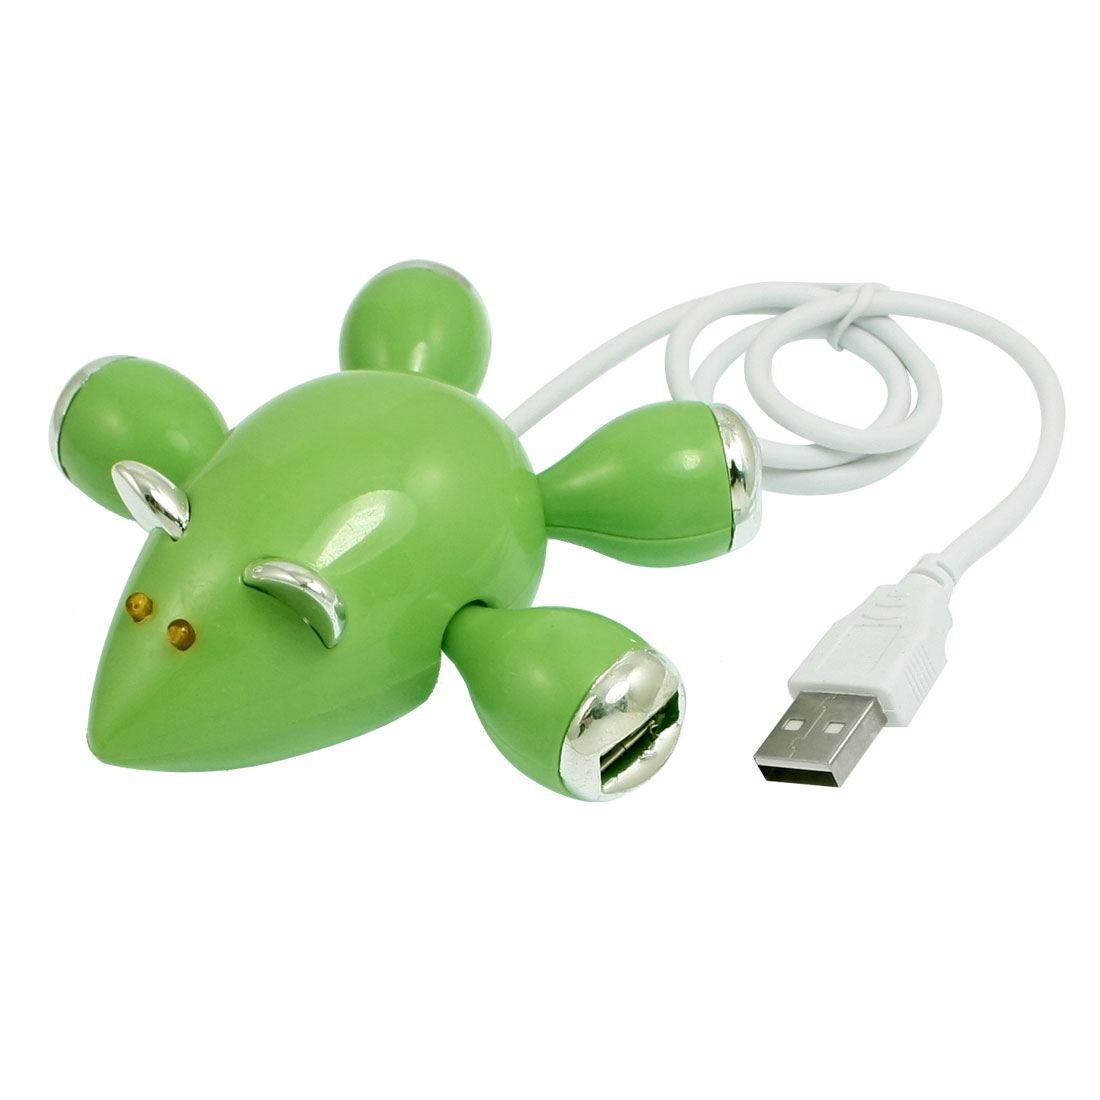 Green Mouse Style High Speed PC Adapter USB 2.0 4-Outport Hub